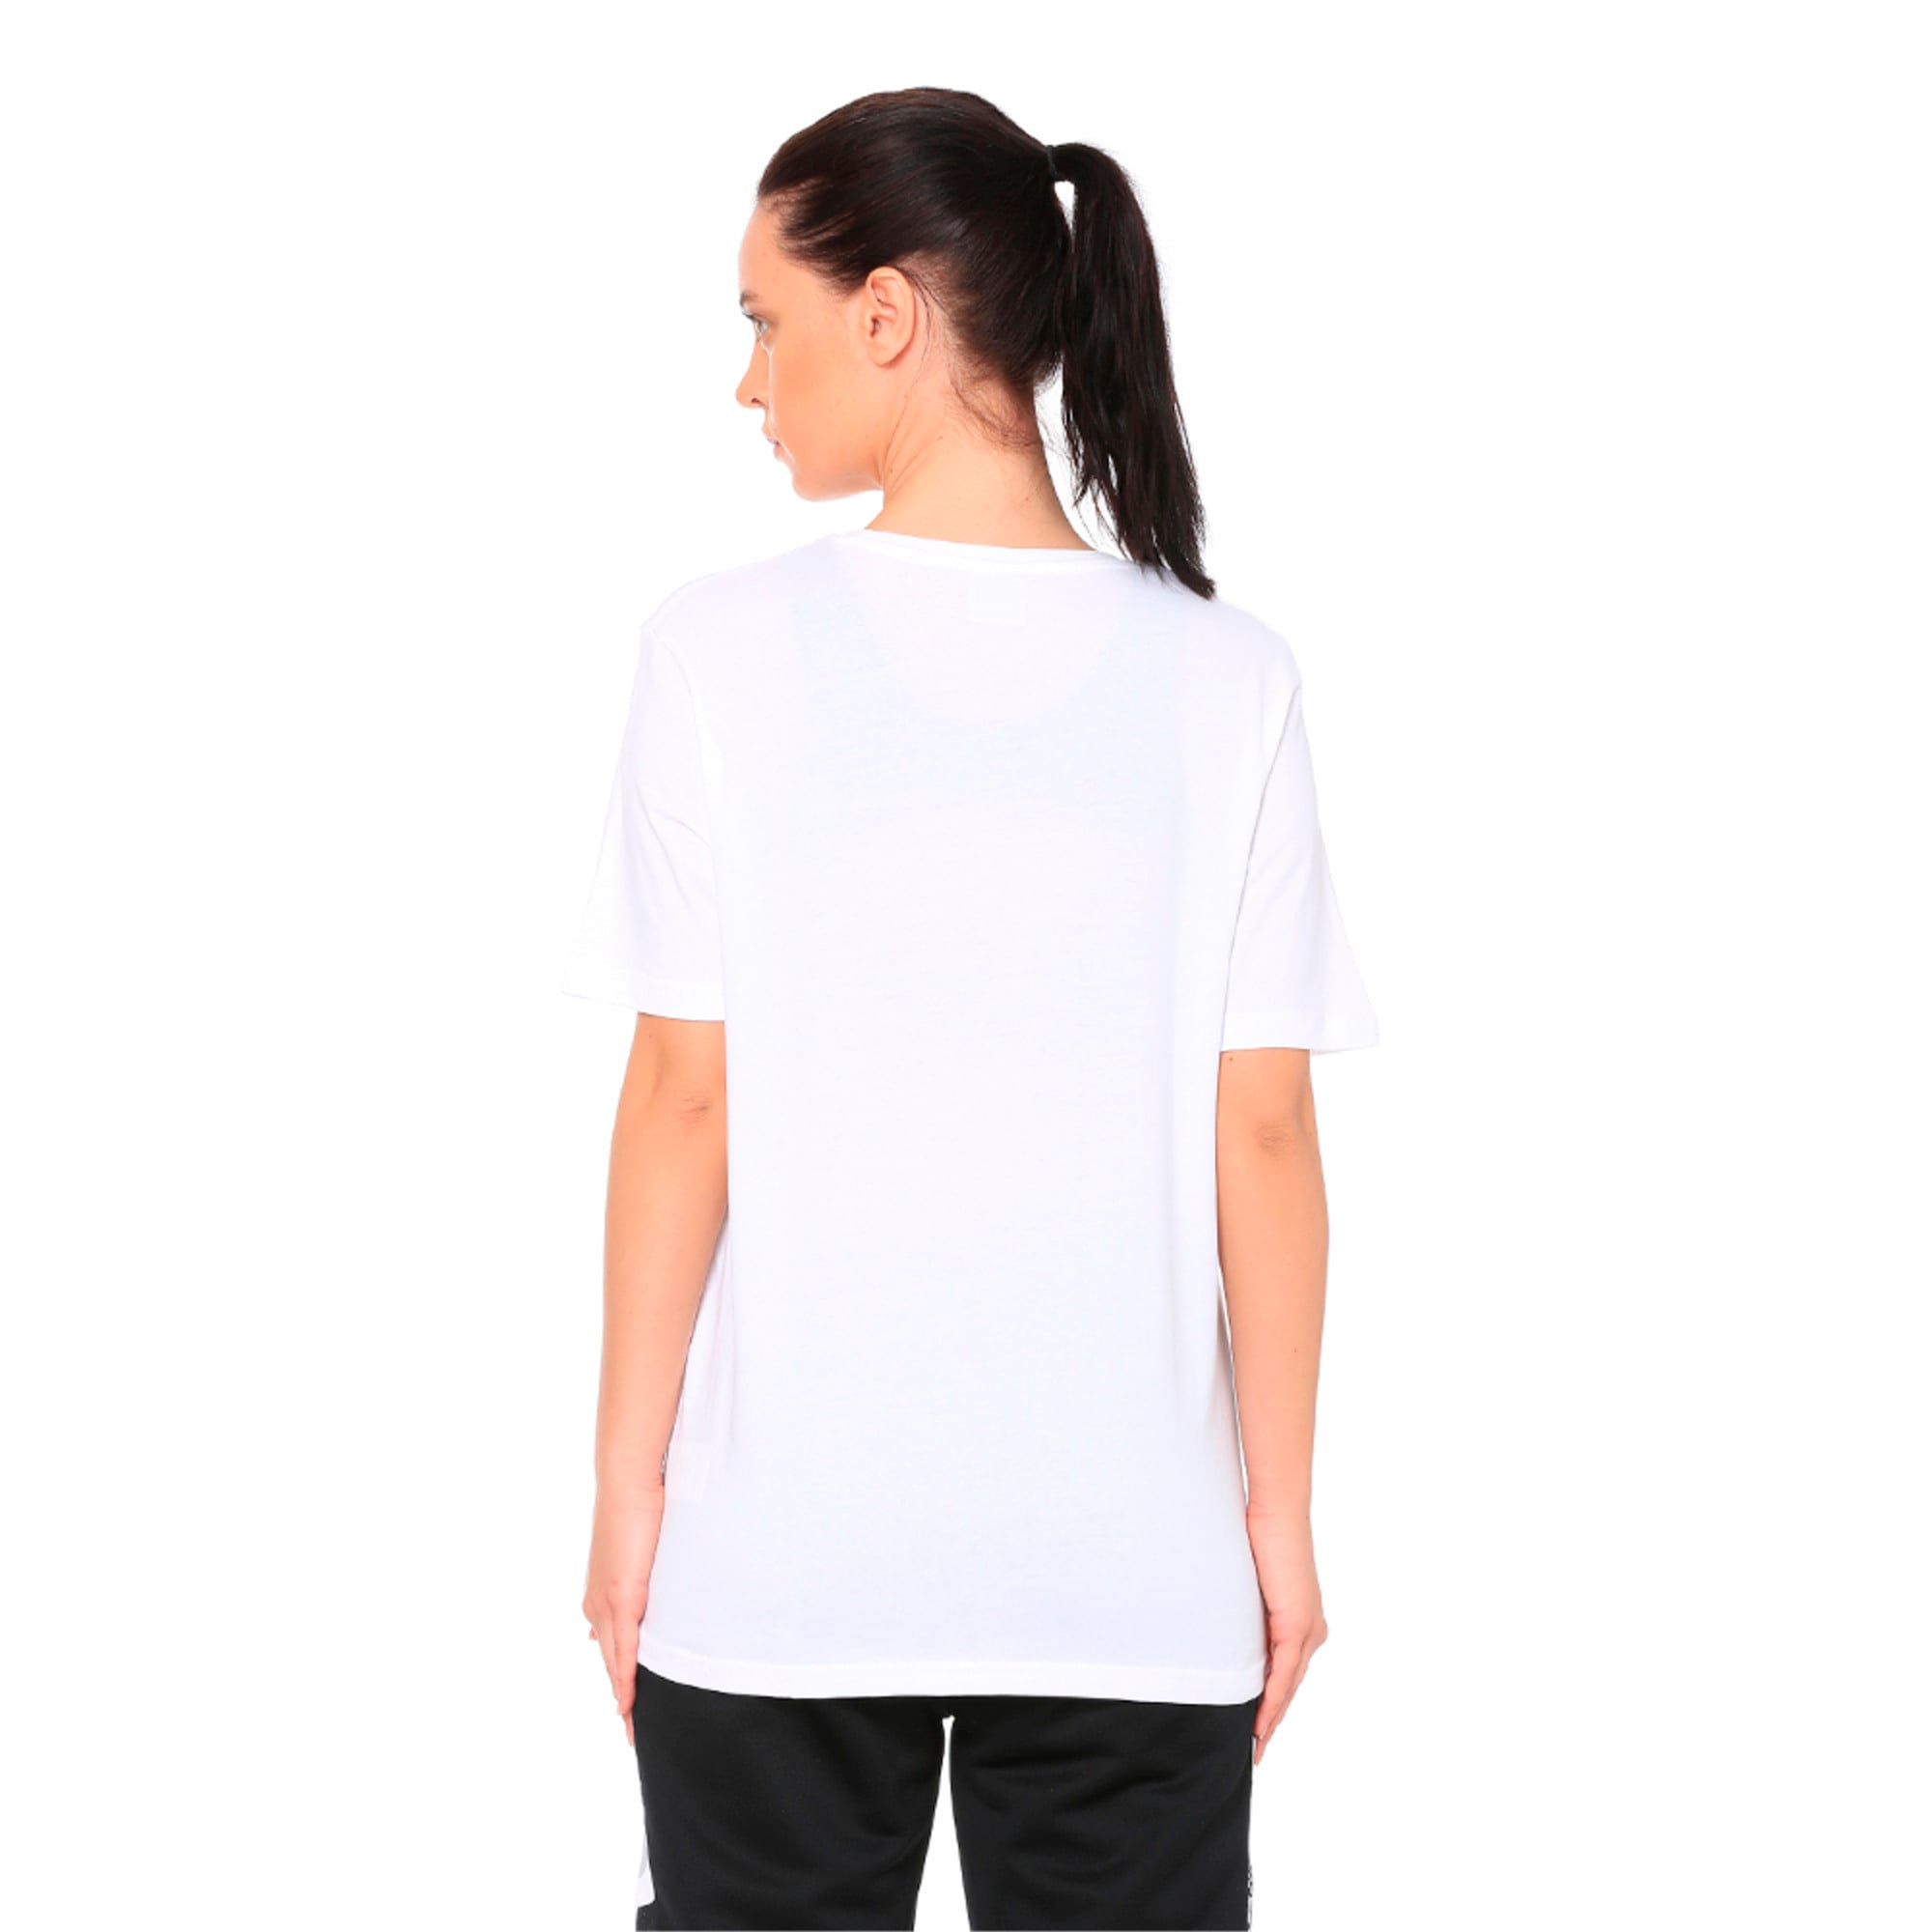 Women's Graphic T-shirt, Puma White, large-IND